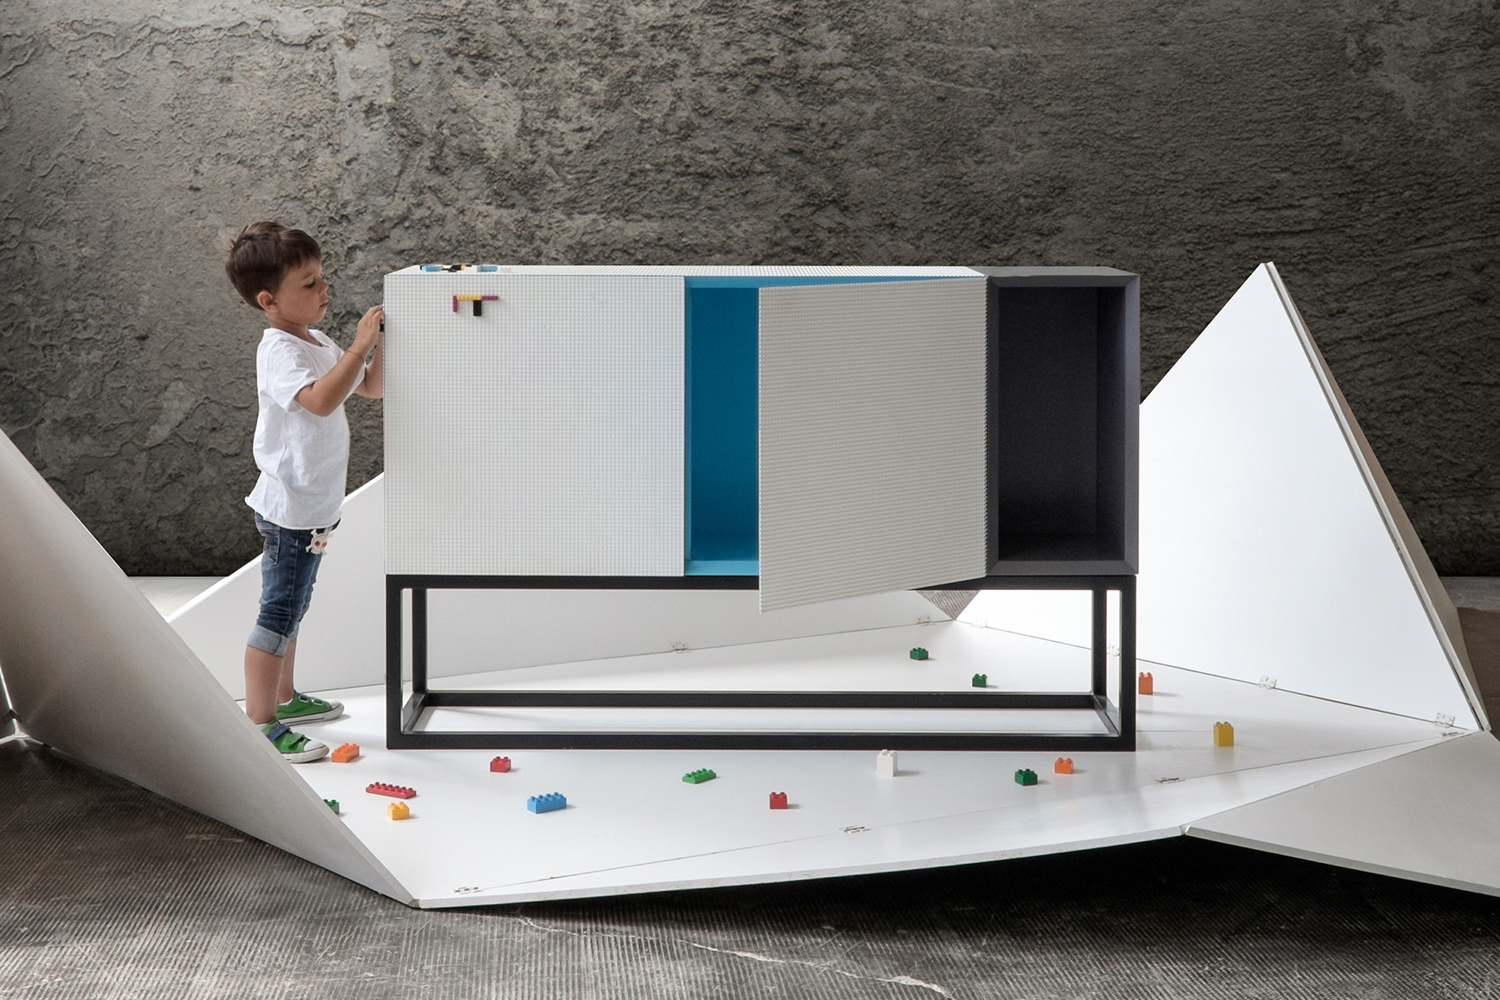 genius is and furniture as sounds cupboard awesome just expected compatible lego it p